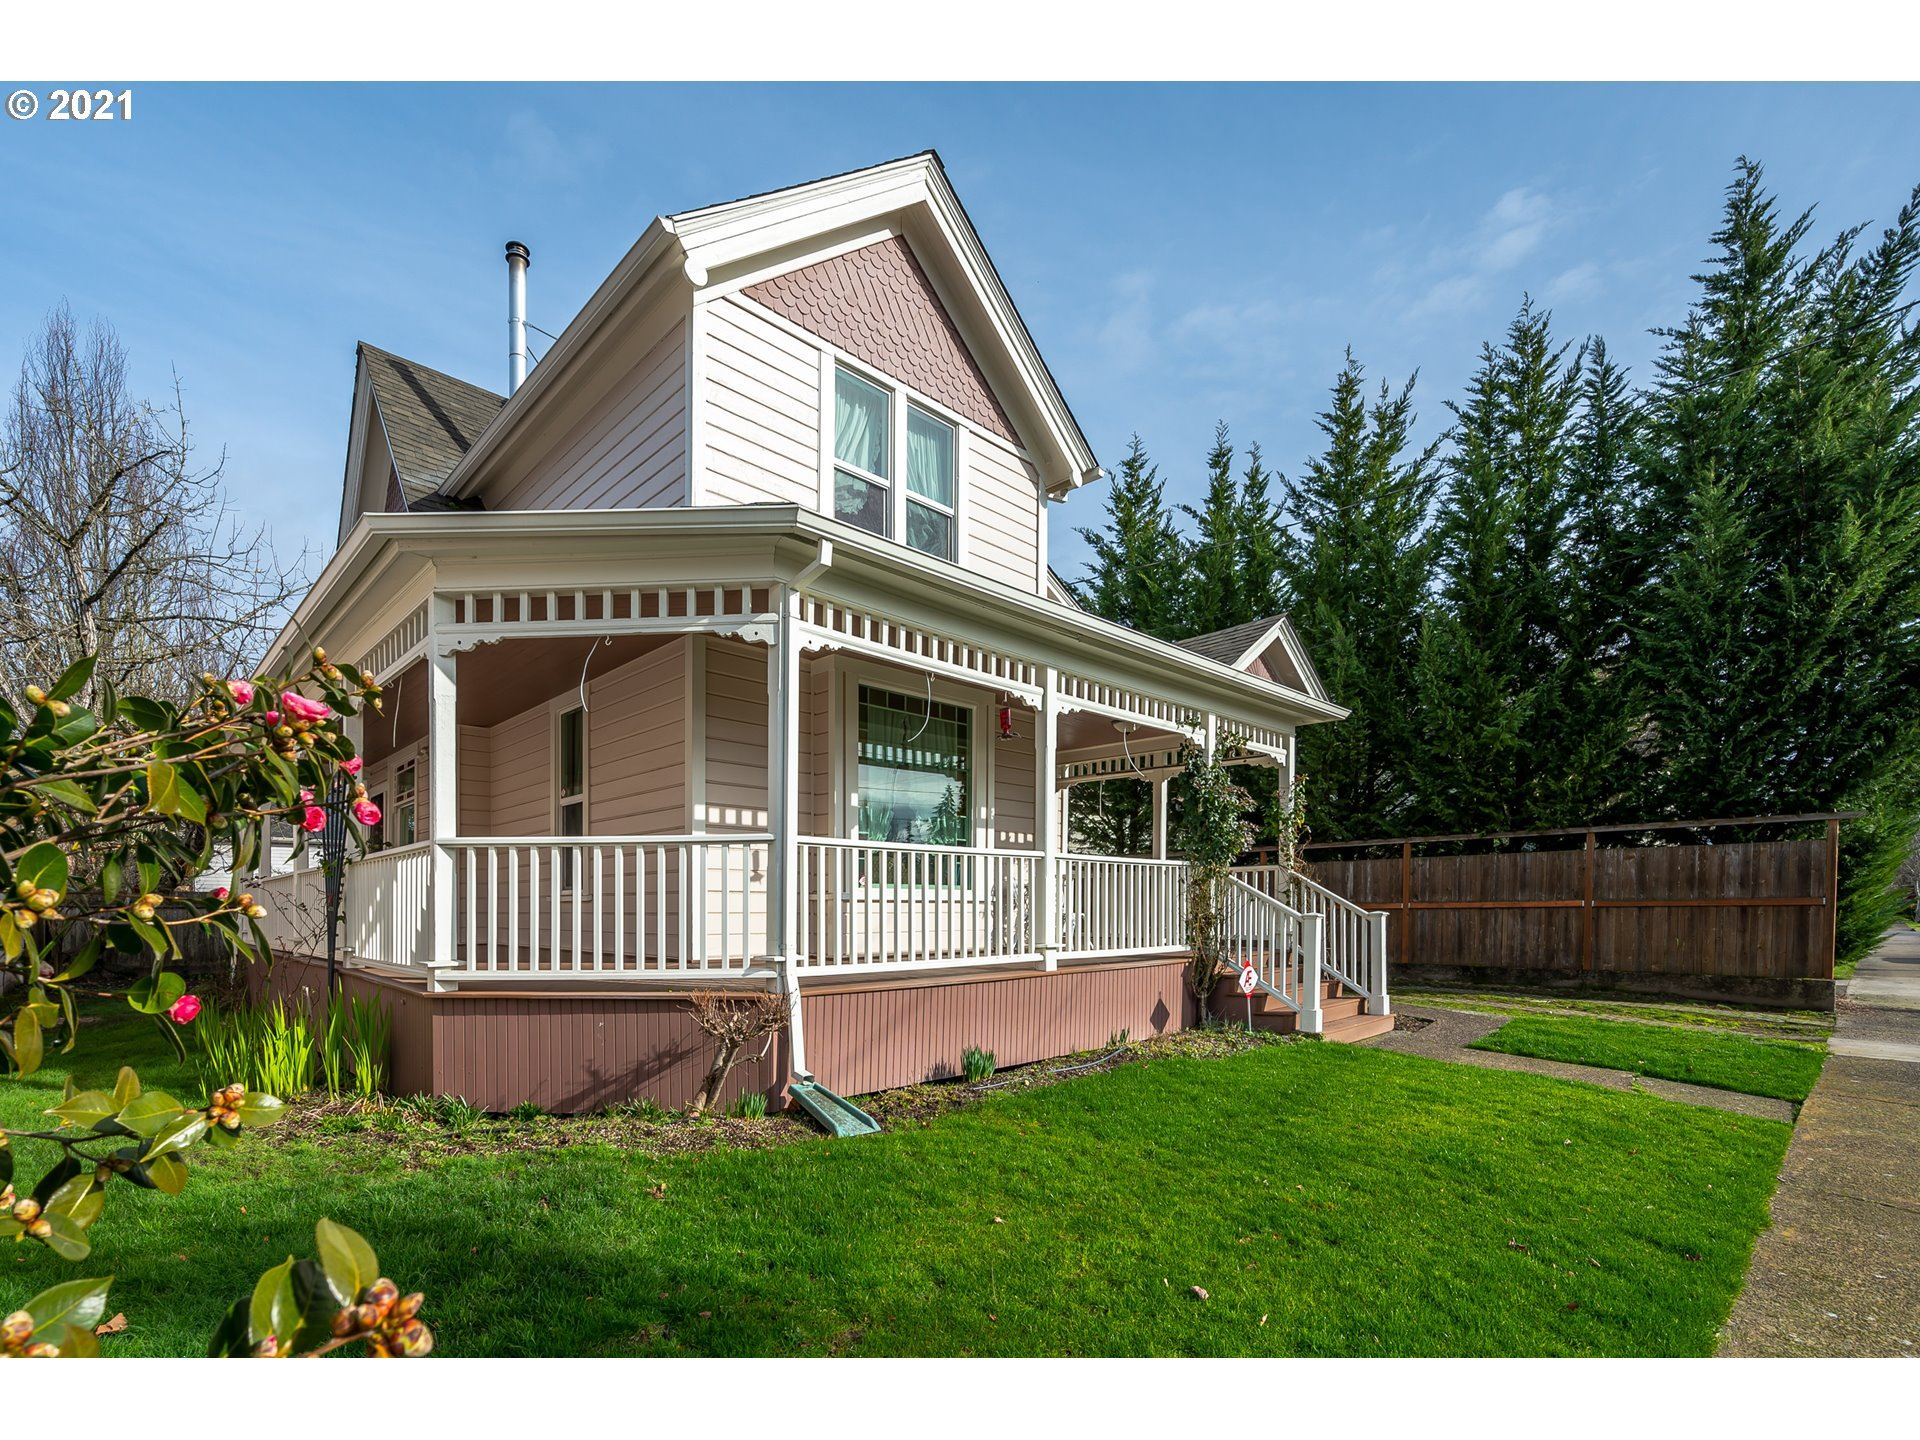 219 SE LINCOLN ST, McMinnville, OR 97128 - MLS#: 21008418